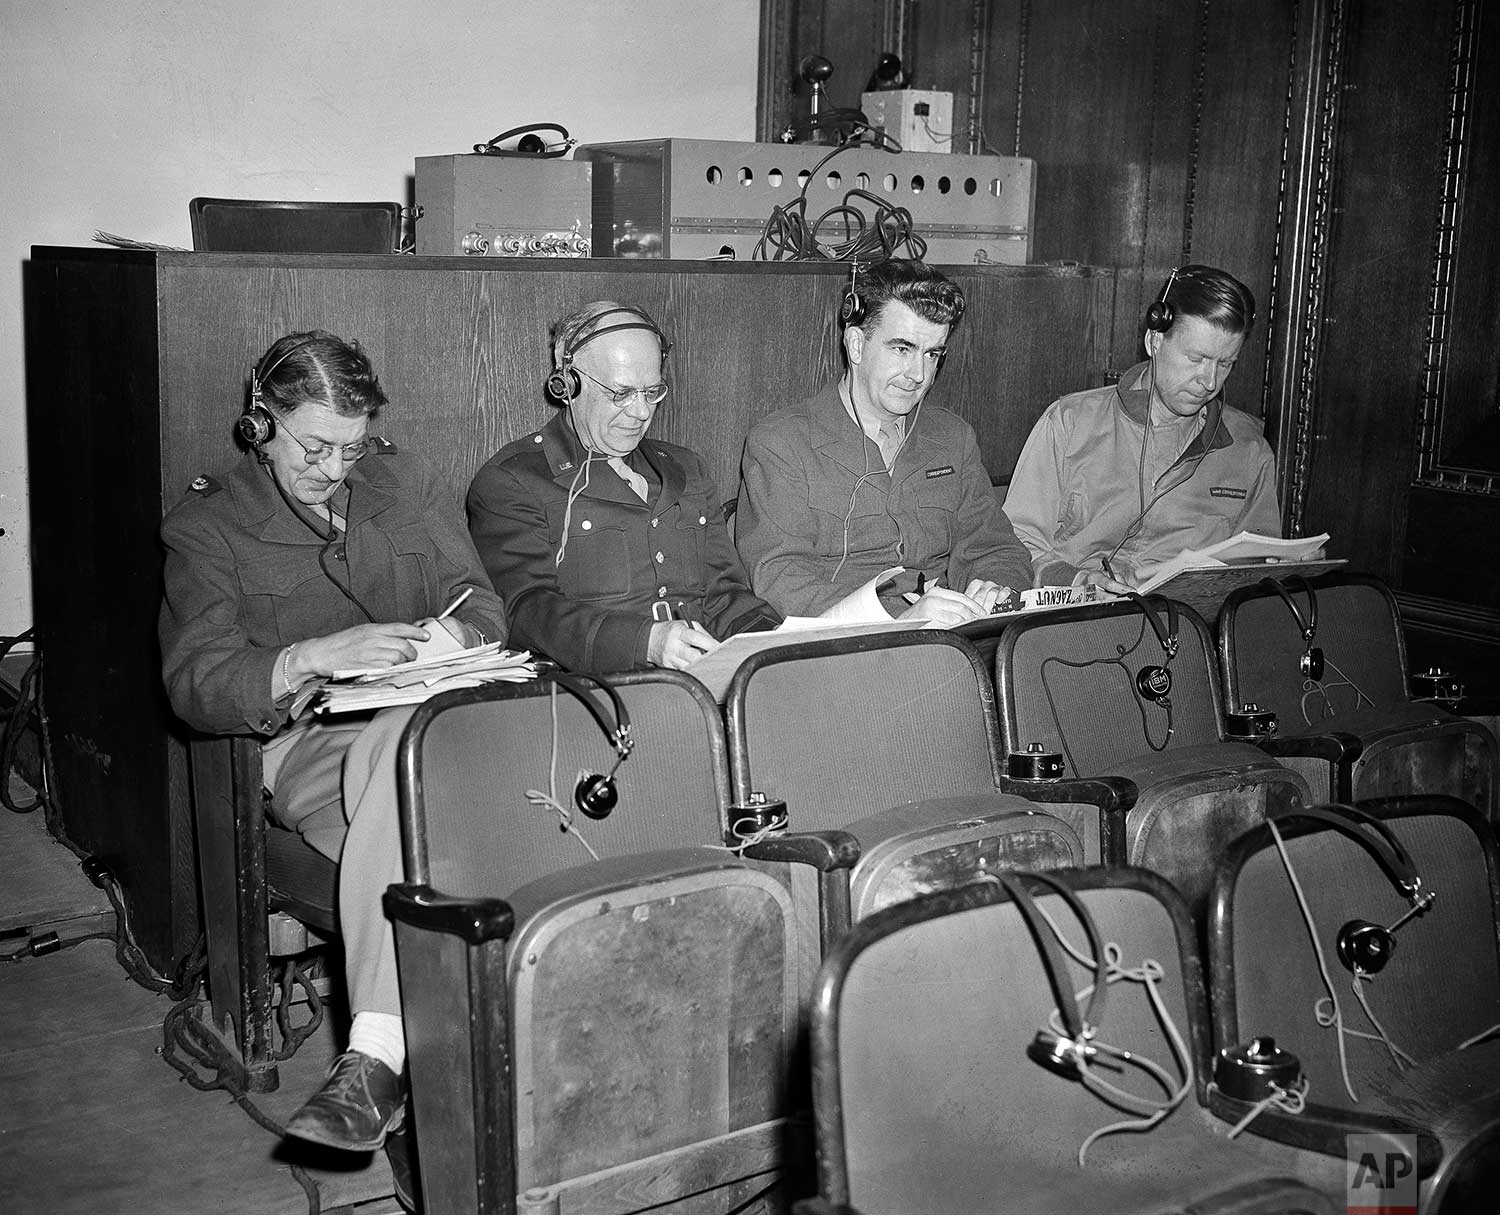 Four staff writers for The Associated Press are pictured working in the courtroom where the Nuremberg war crimes trials are being held, December 1945. From left: Boots Norgaard, Louis Lochner, Wes Gallagher and Dan DeLuce. (AP Photo/B.I. Sanders)